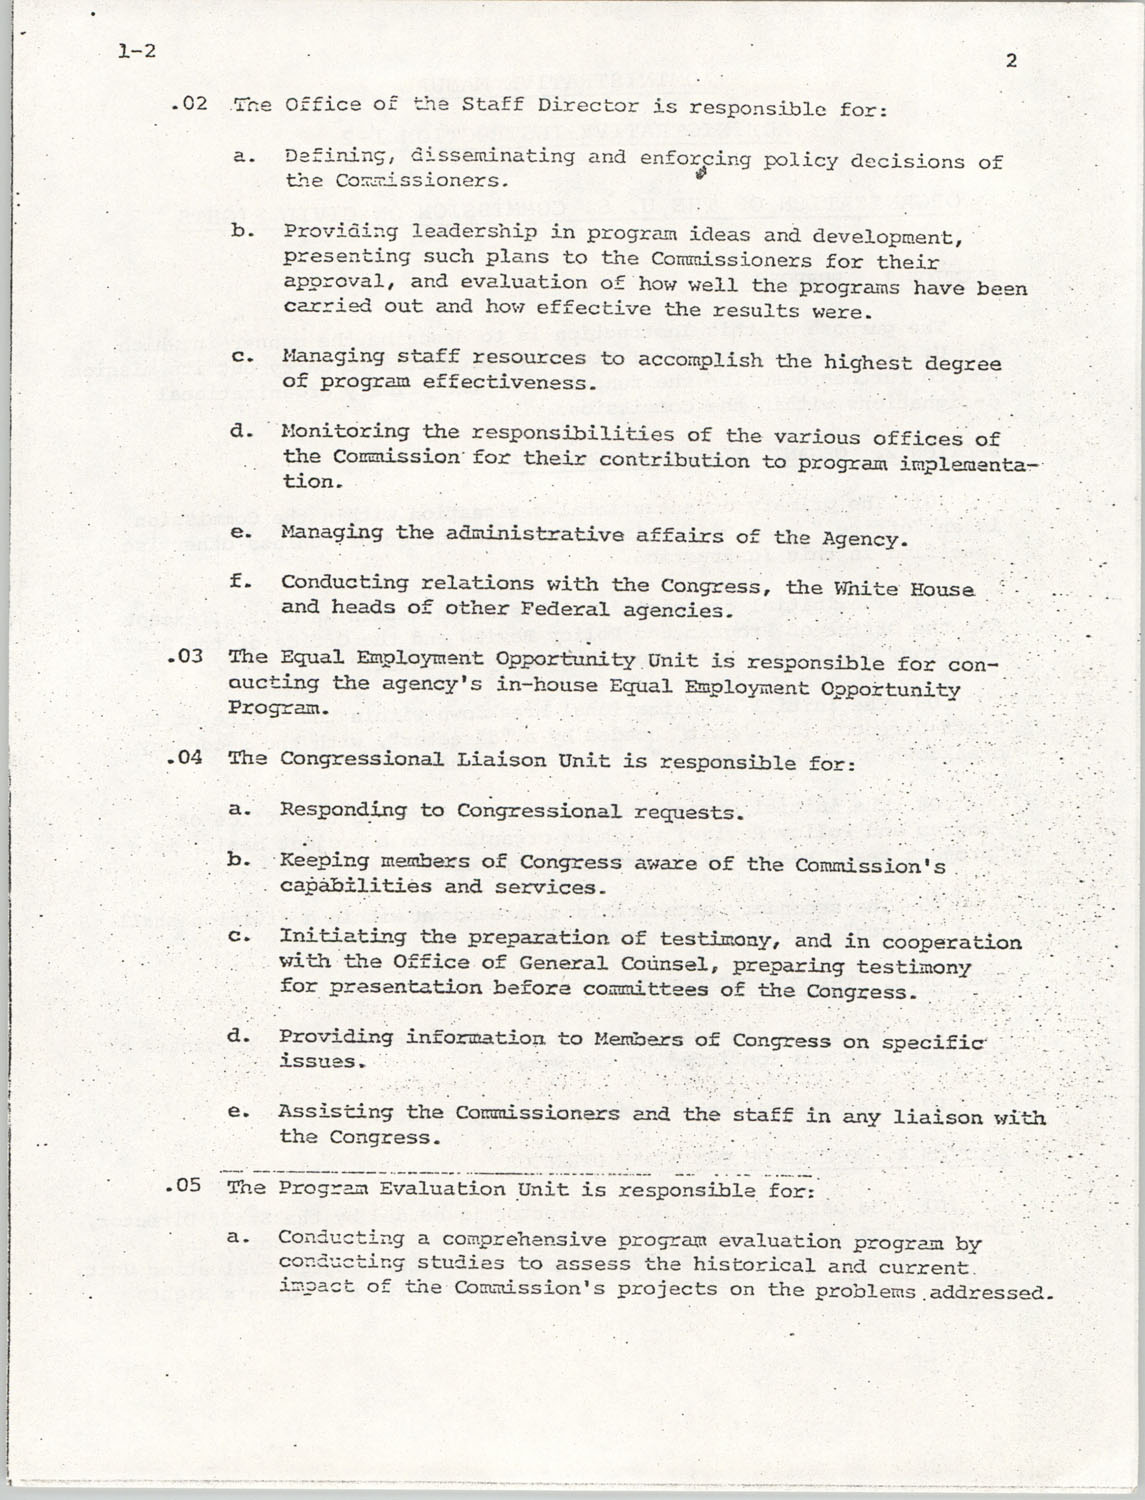 Administrative Manual Instruction 1-2, Organization of the U.S. Commission on Civil Rights, Page 2